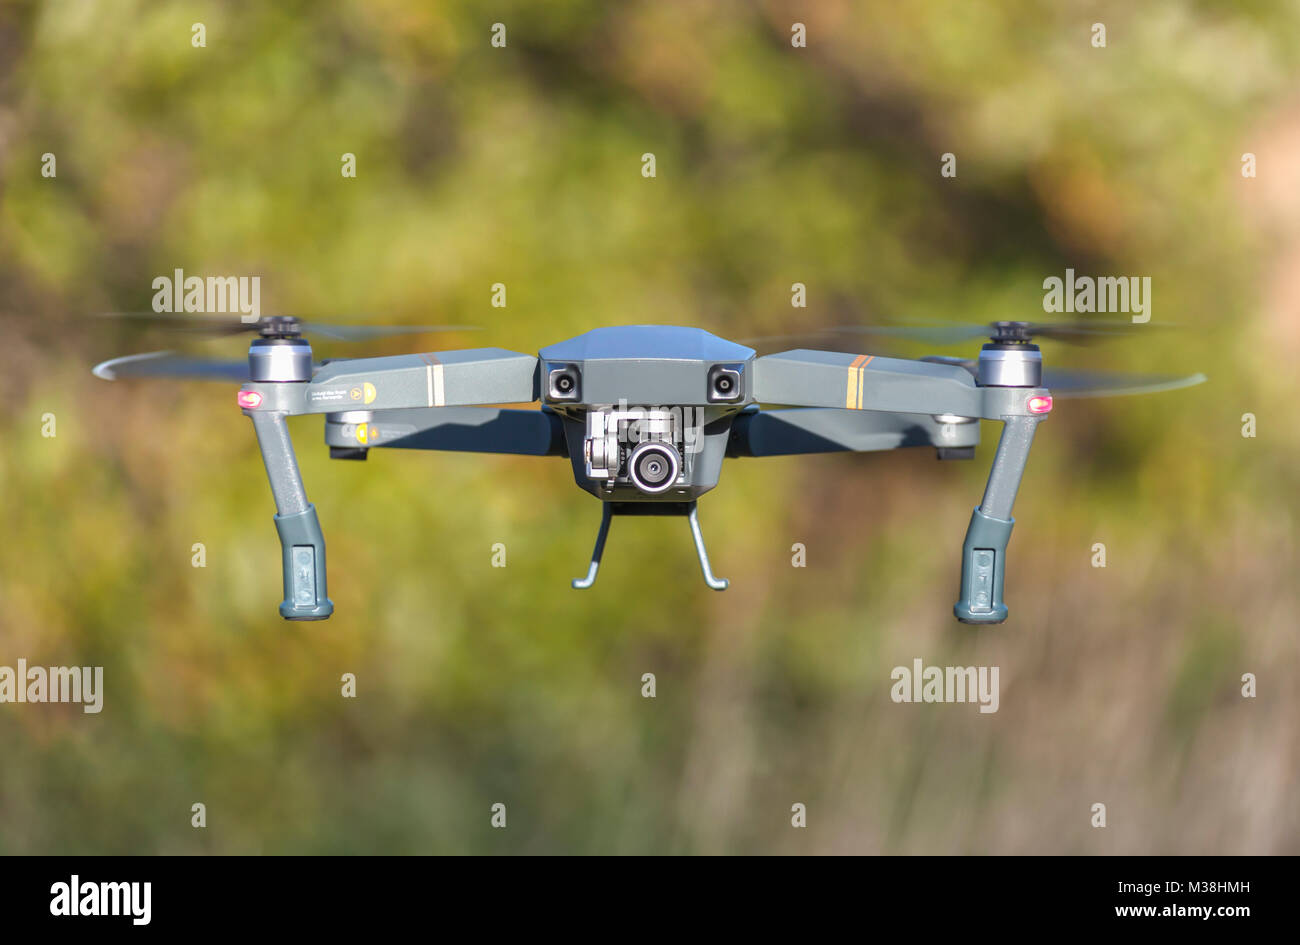 Close up of a drone uav  quadcopter in flight for recreational video and photography use - Stock Image